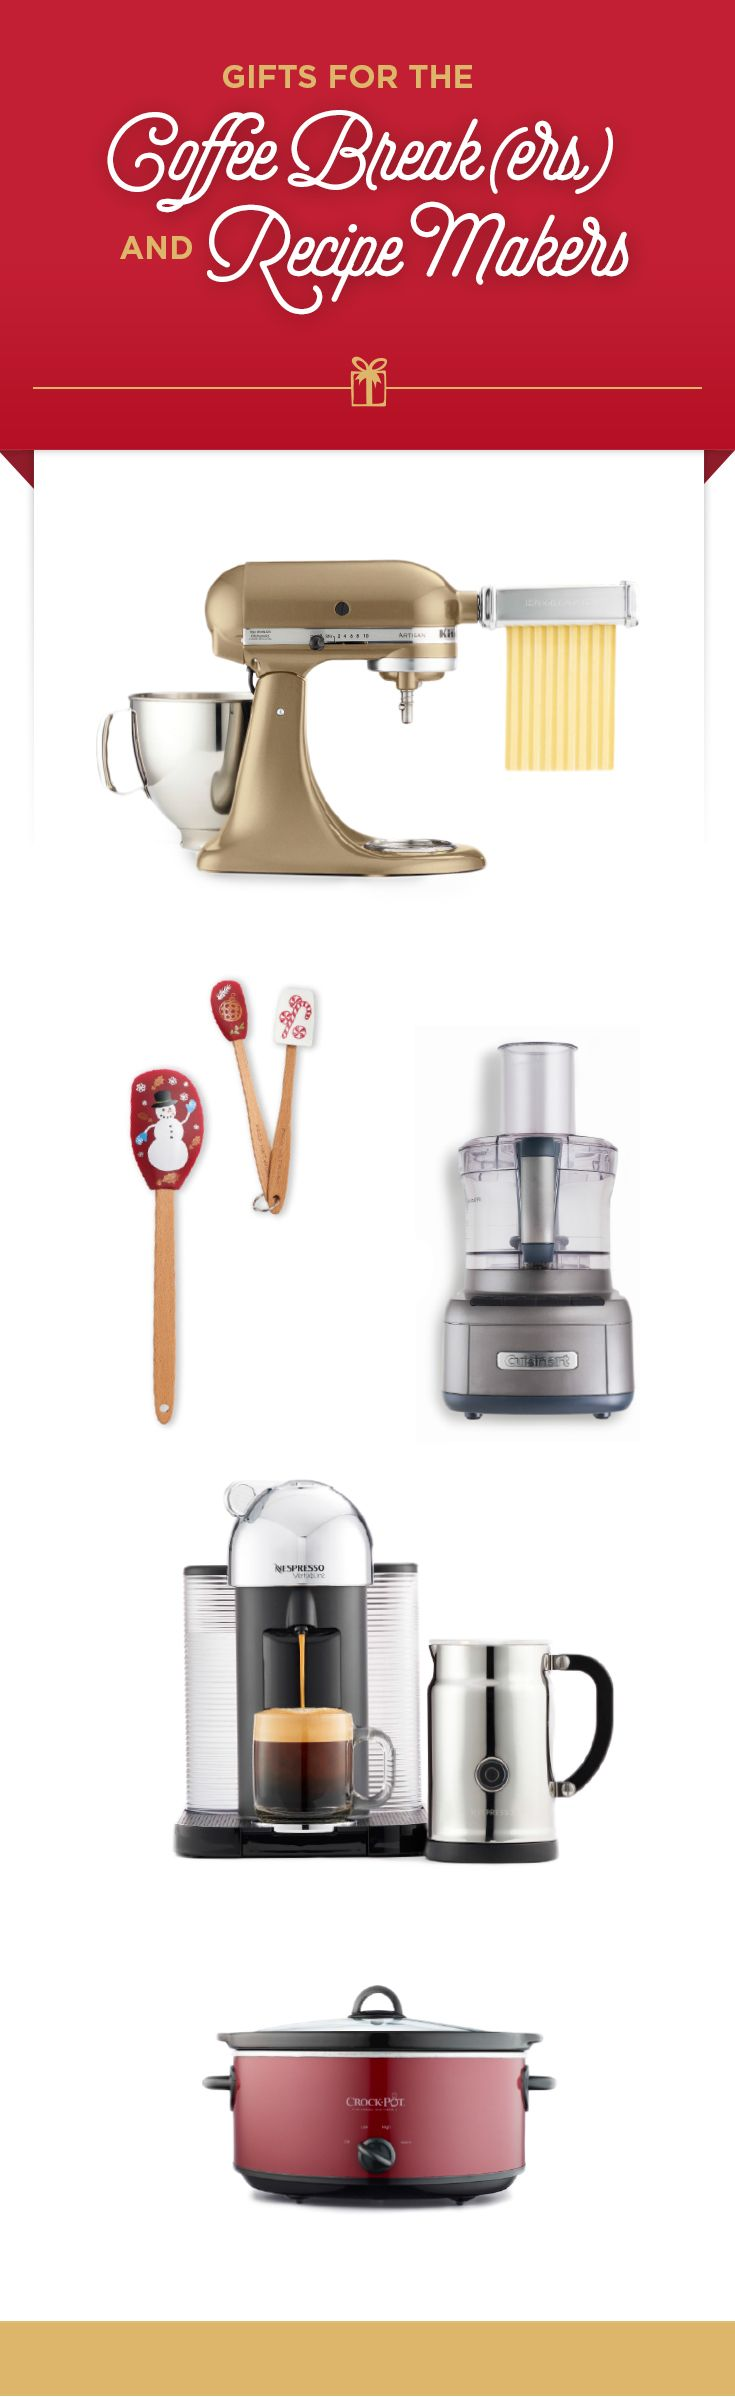 Attention gift givers: Here's our gift list for the cooks, the bakers and the best coffee makers. Gifts from top to bottom: KitchenAid Artisan Stand Mixer (in a Kohl's-exclusive color), festive Food Network gadgets, Cuisinart 8-cup food processor, Nespresso VirtuoLine chrome bundle, and Crock- Pot 7-qt. slow cooker.